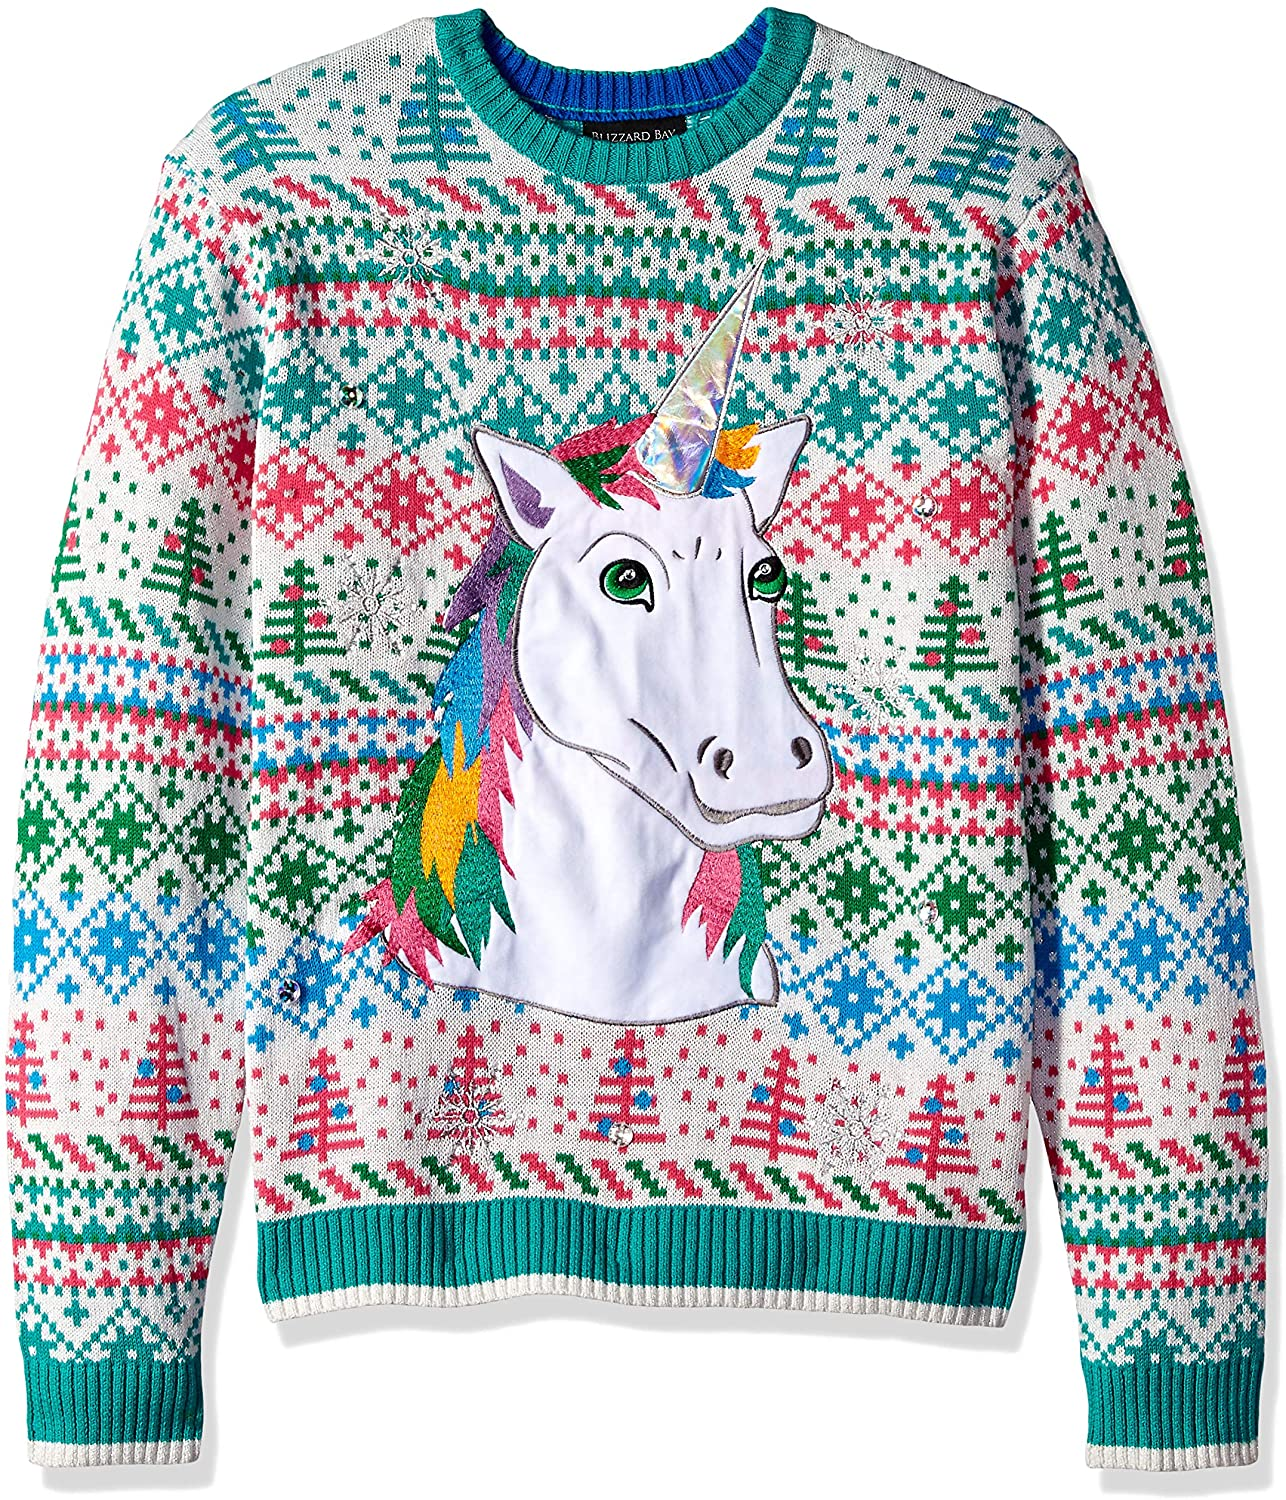 Blizzard Bay Men's Ugly Christmas Sweater Unicorn